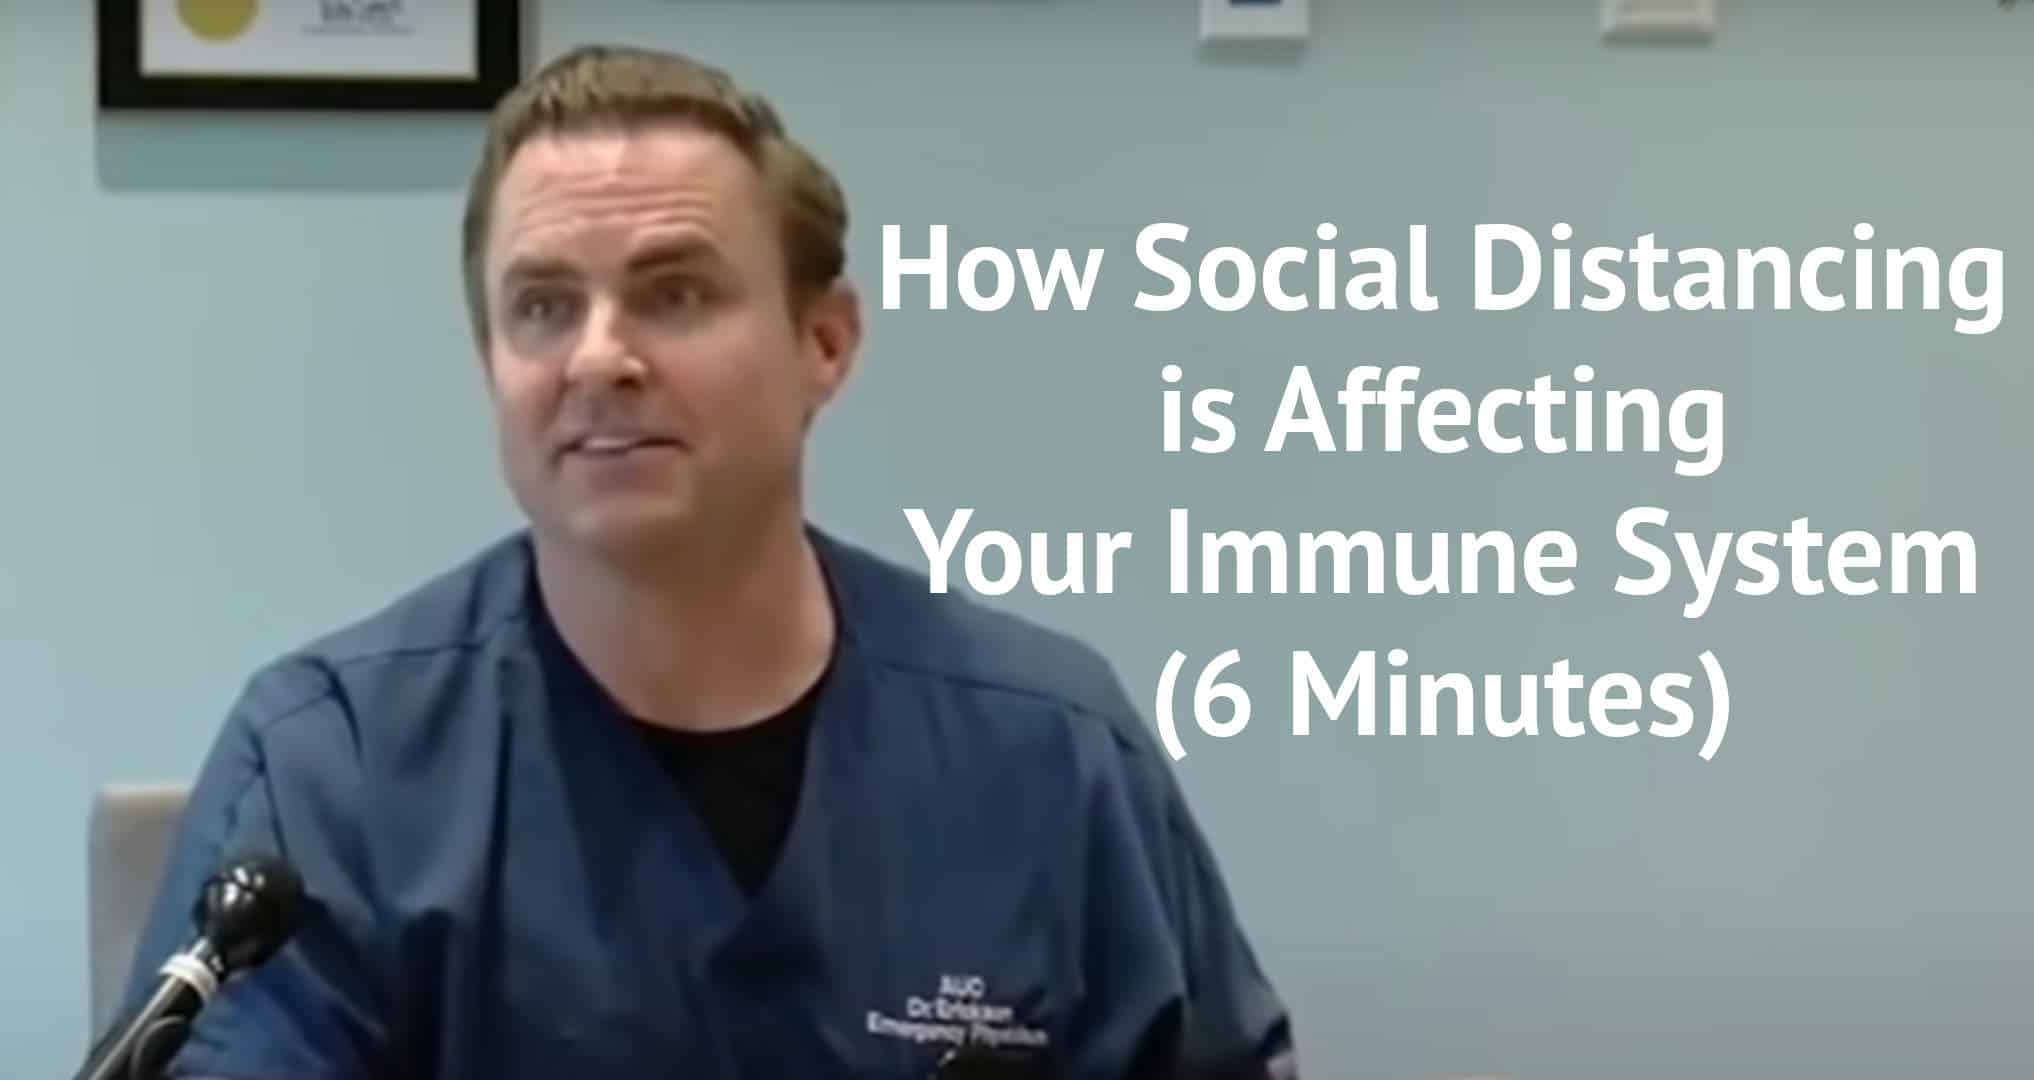 How social distancing is affecting your immune system 6 minute video